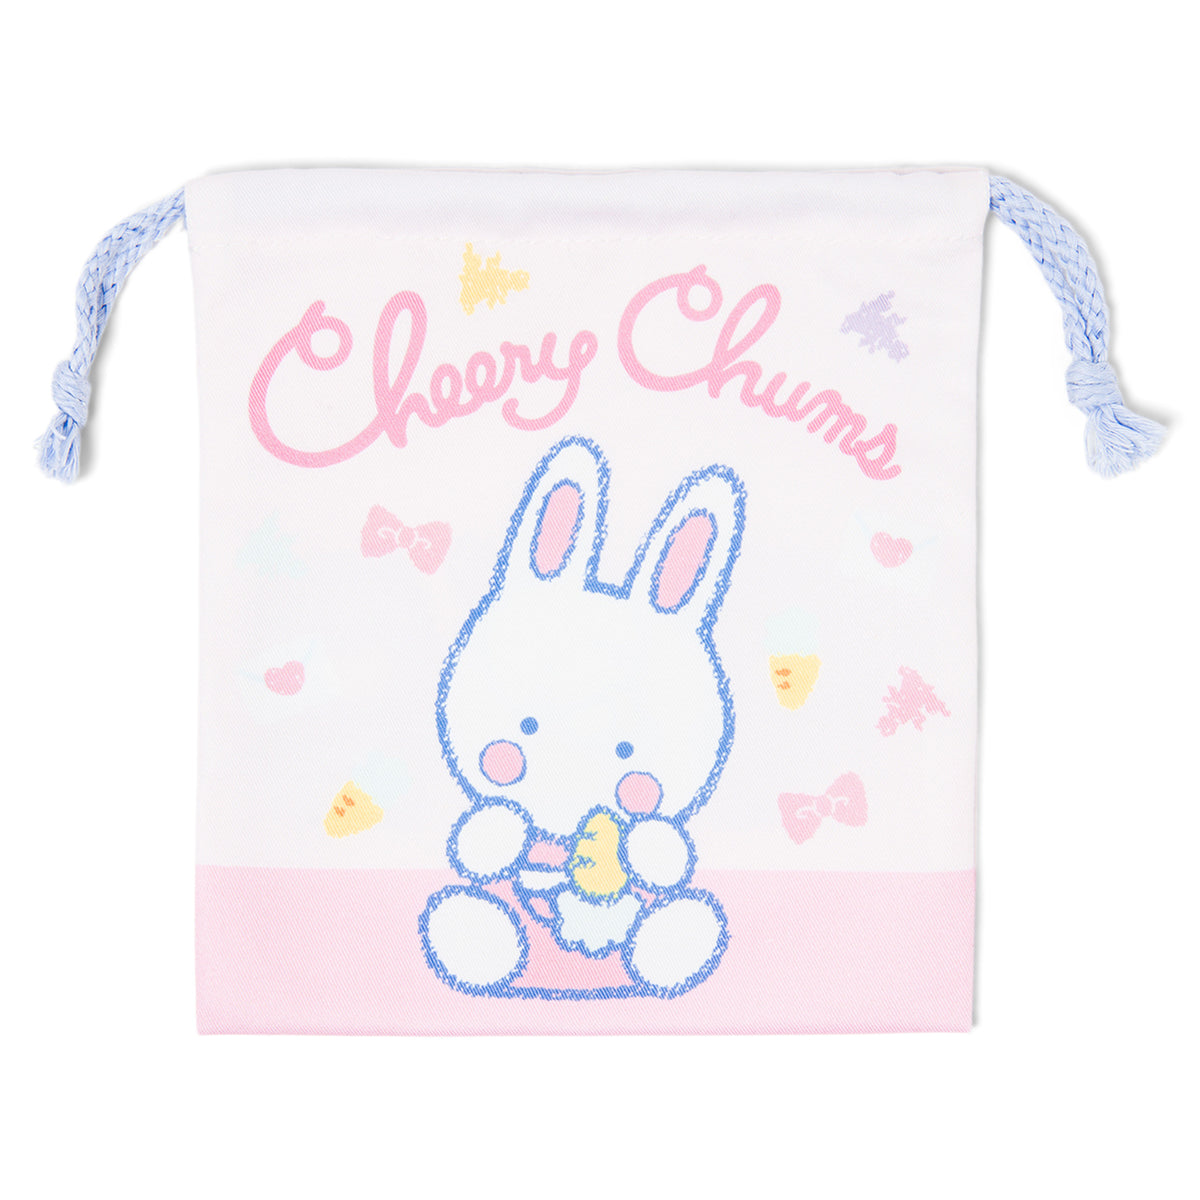 Cheery Chums Classic Character Drawstring Bag